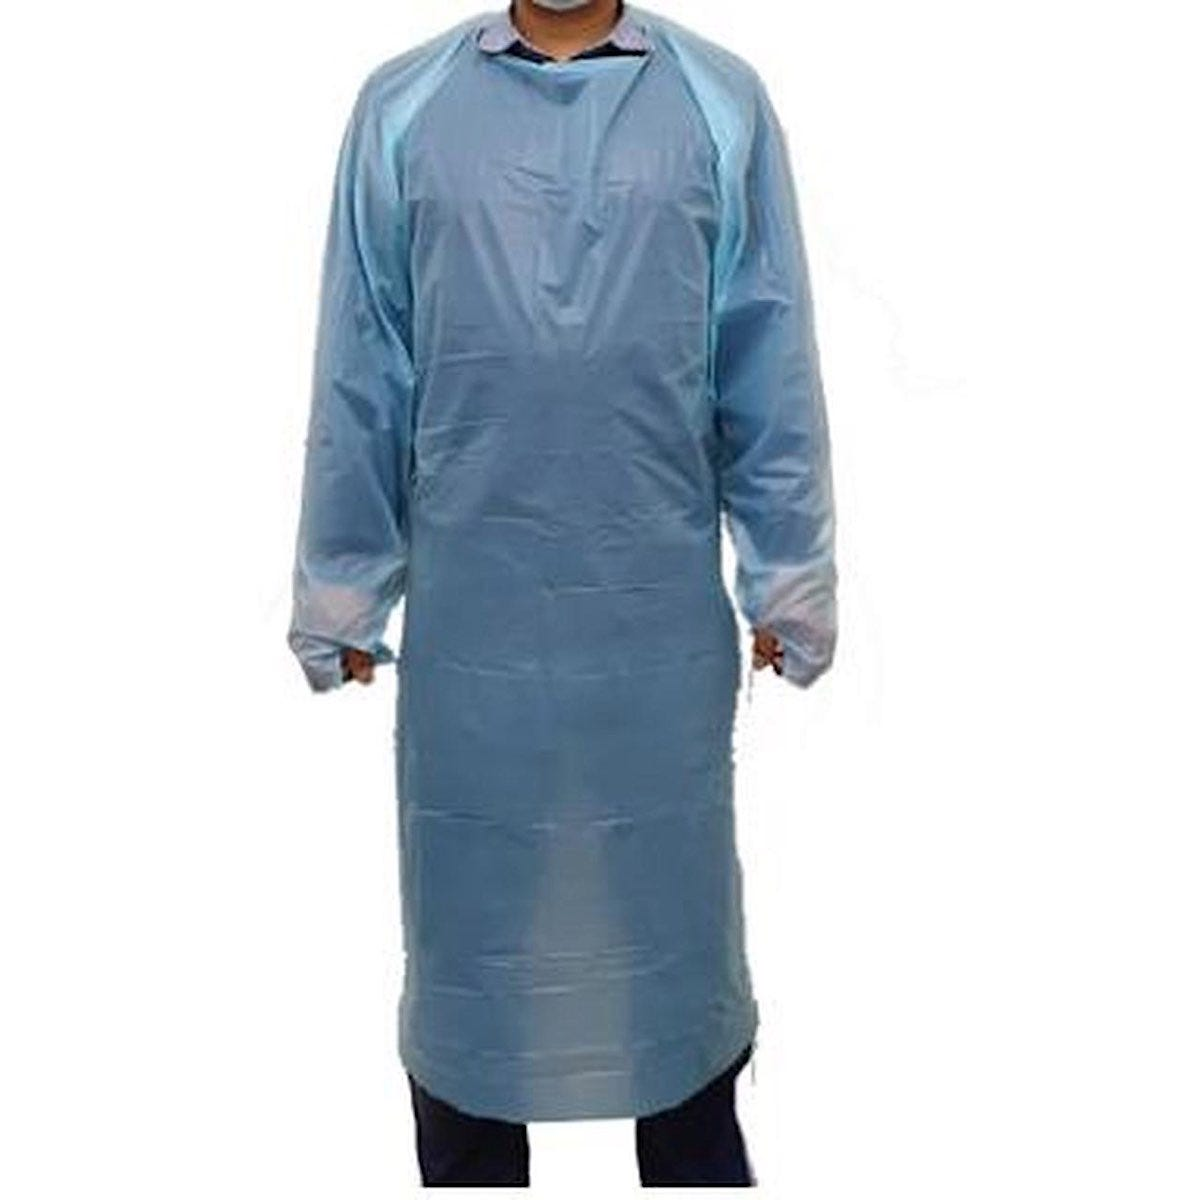 Level 1 Isolation Gown, Disposable